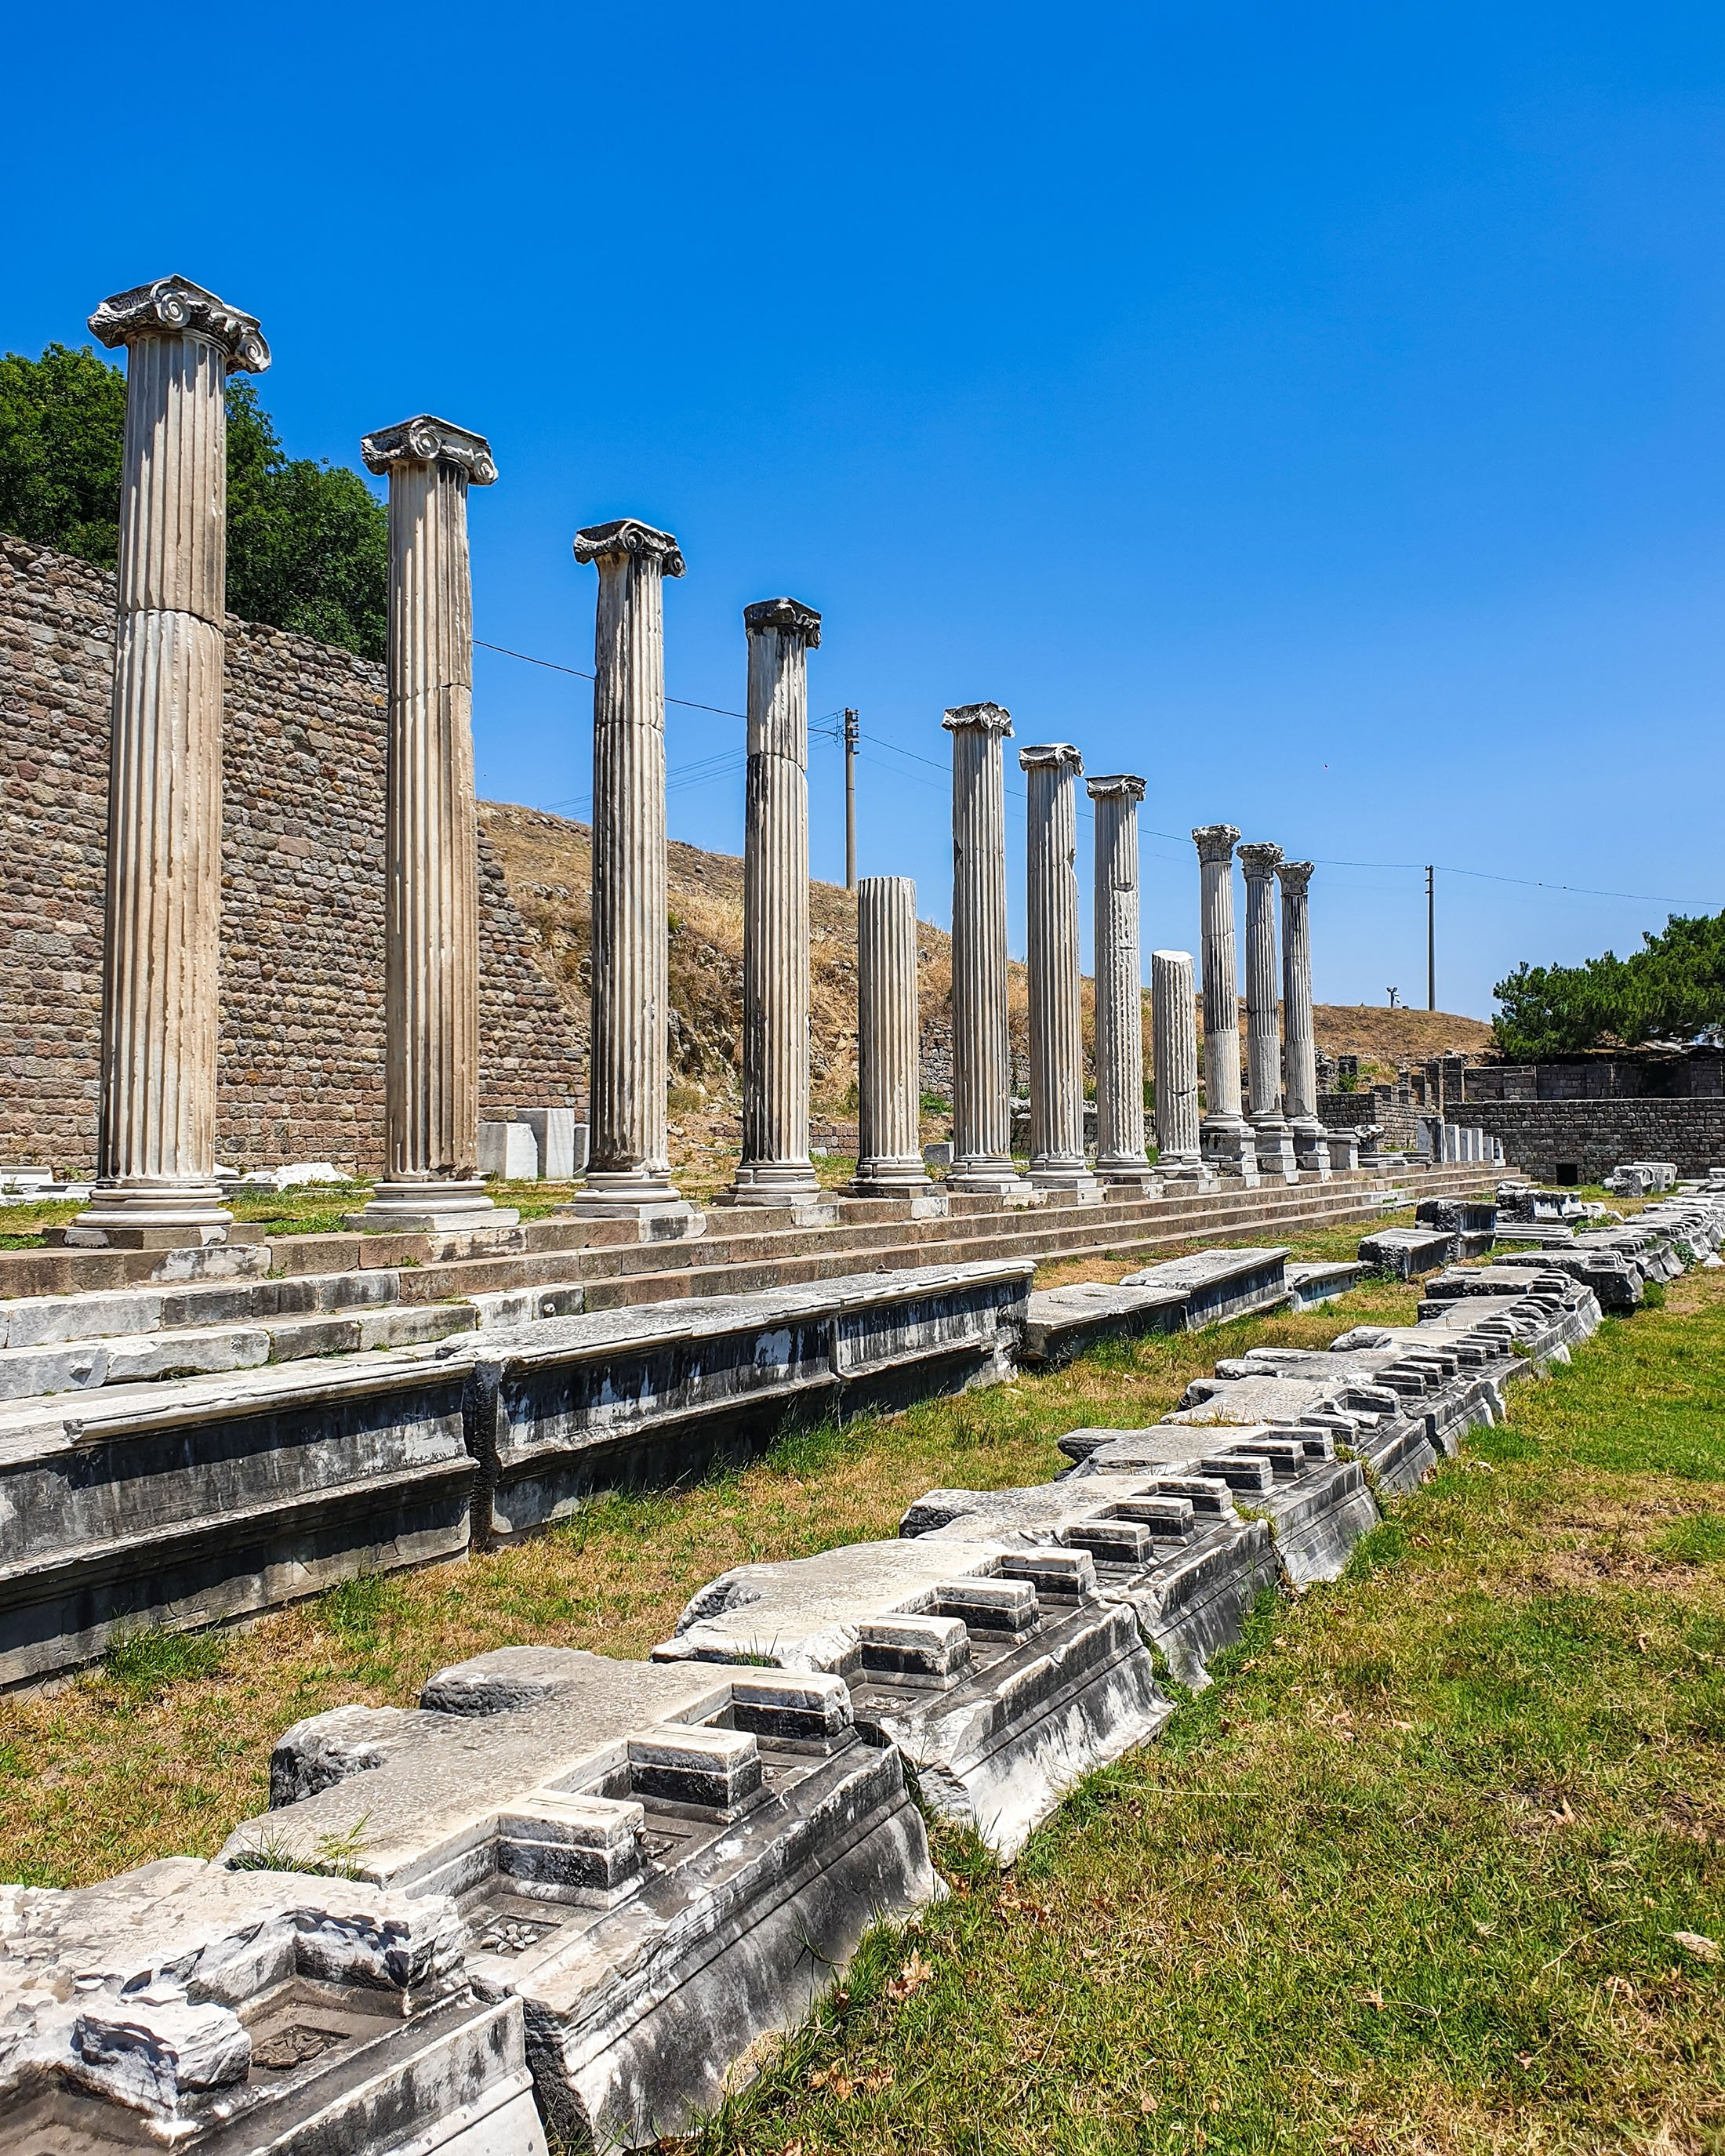 The colonnaded street in front of the Asclepion theater. (Photo by Argun Konuk)